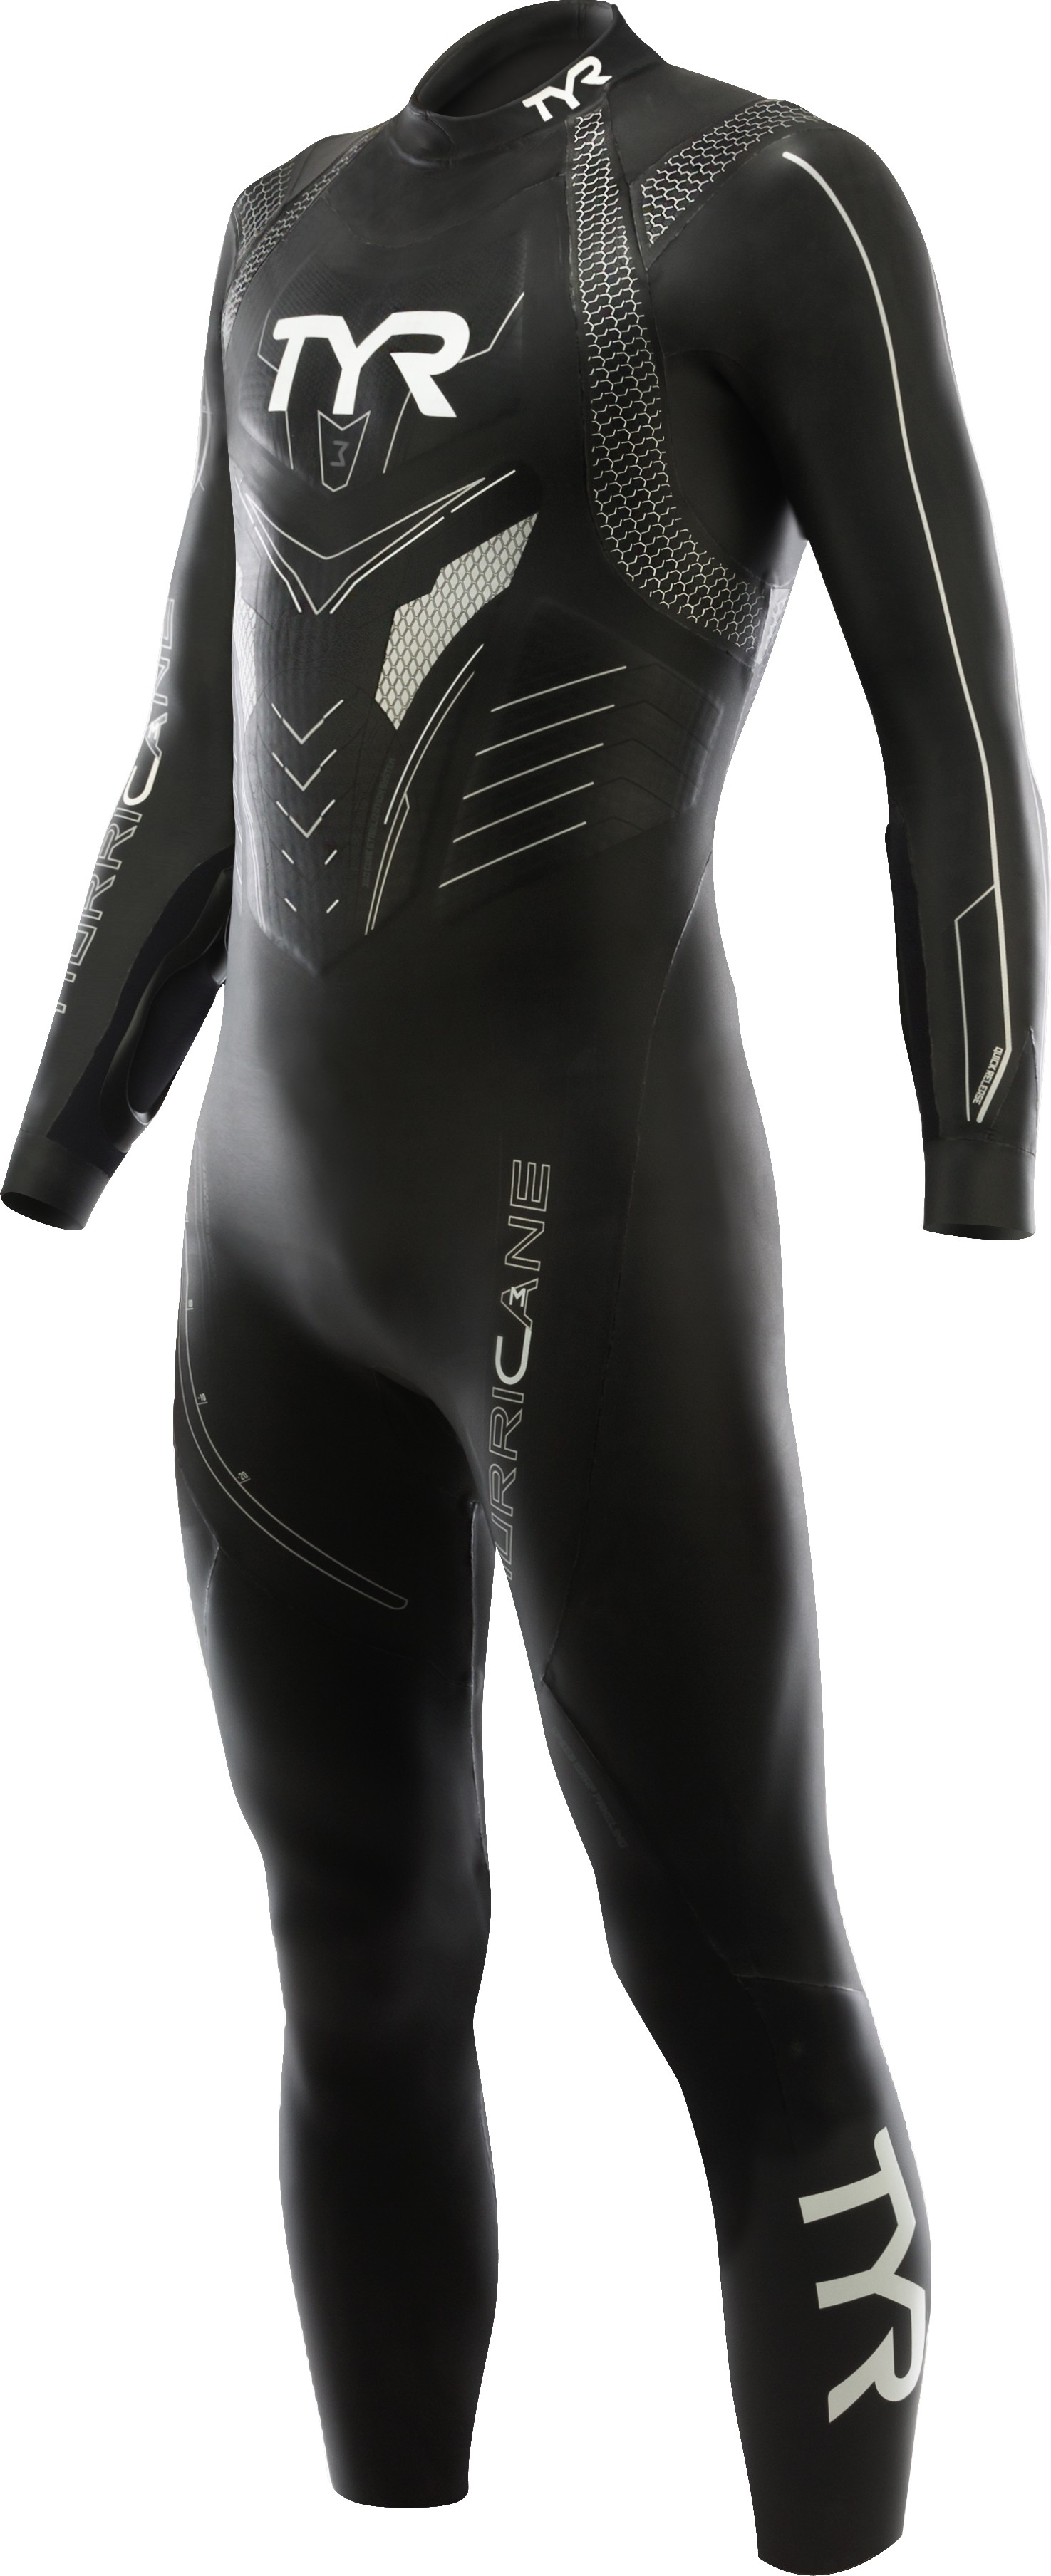 Wetsuit Outlet Gift Voucher From £1. Grab this offer to find out great discounts at Wetsuit Outlet when you buy techriverku3.gq soon, use this deal now. - [[site_name]]MOREWetsuit Outlet is finally arrived with massive techriverku3.gq this deal: Wetsuit Outlet Gift Voucher .